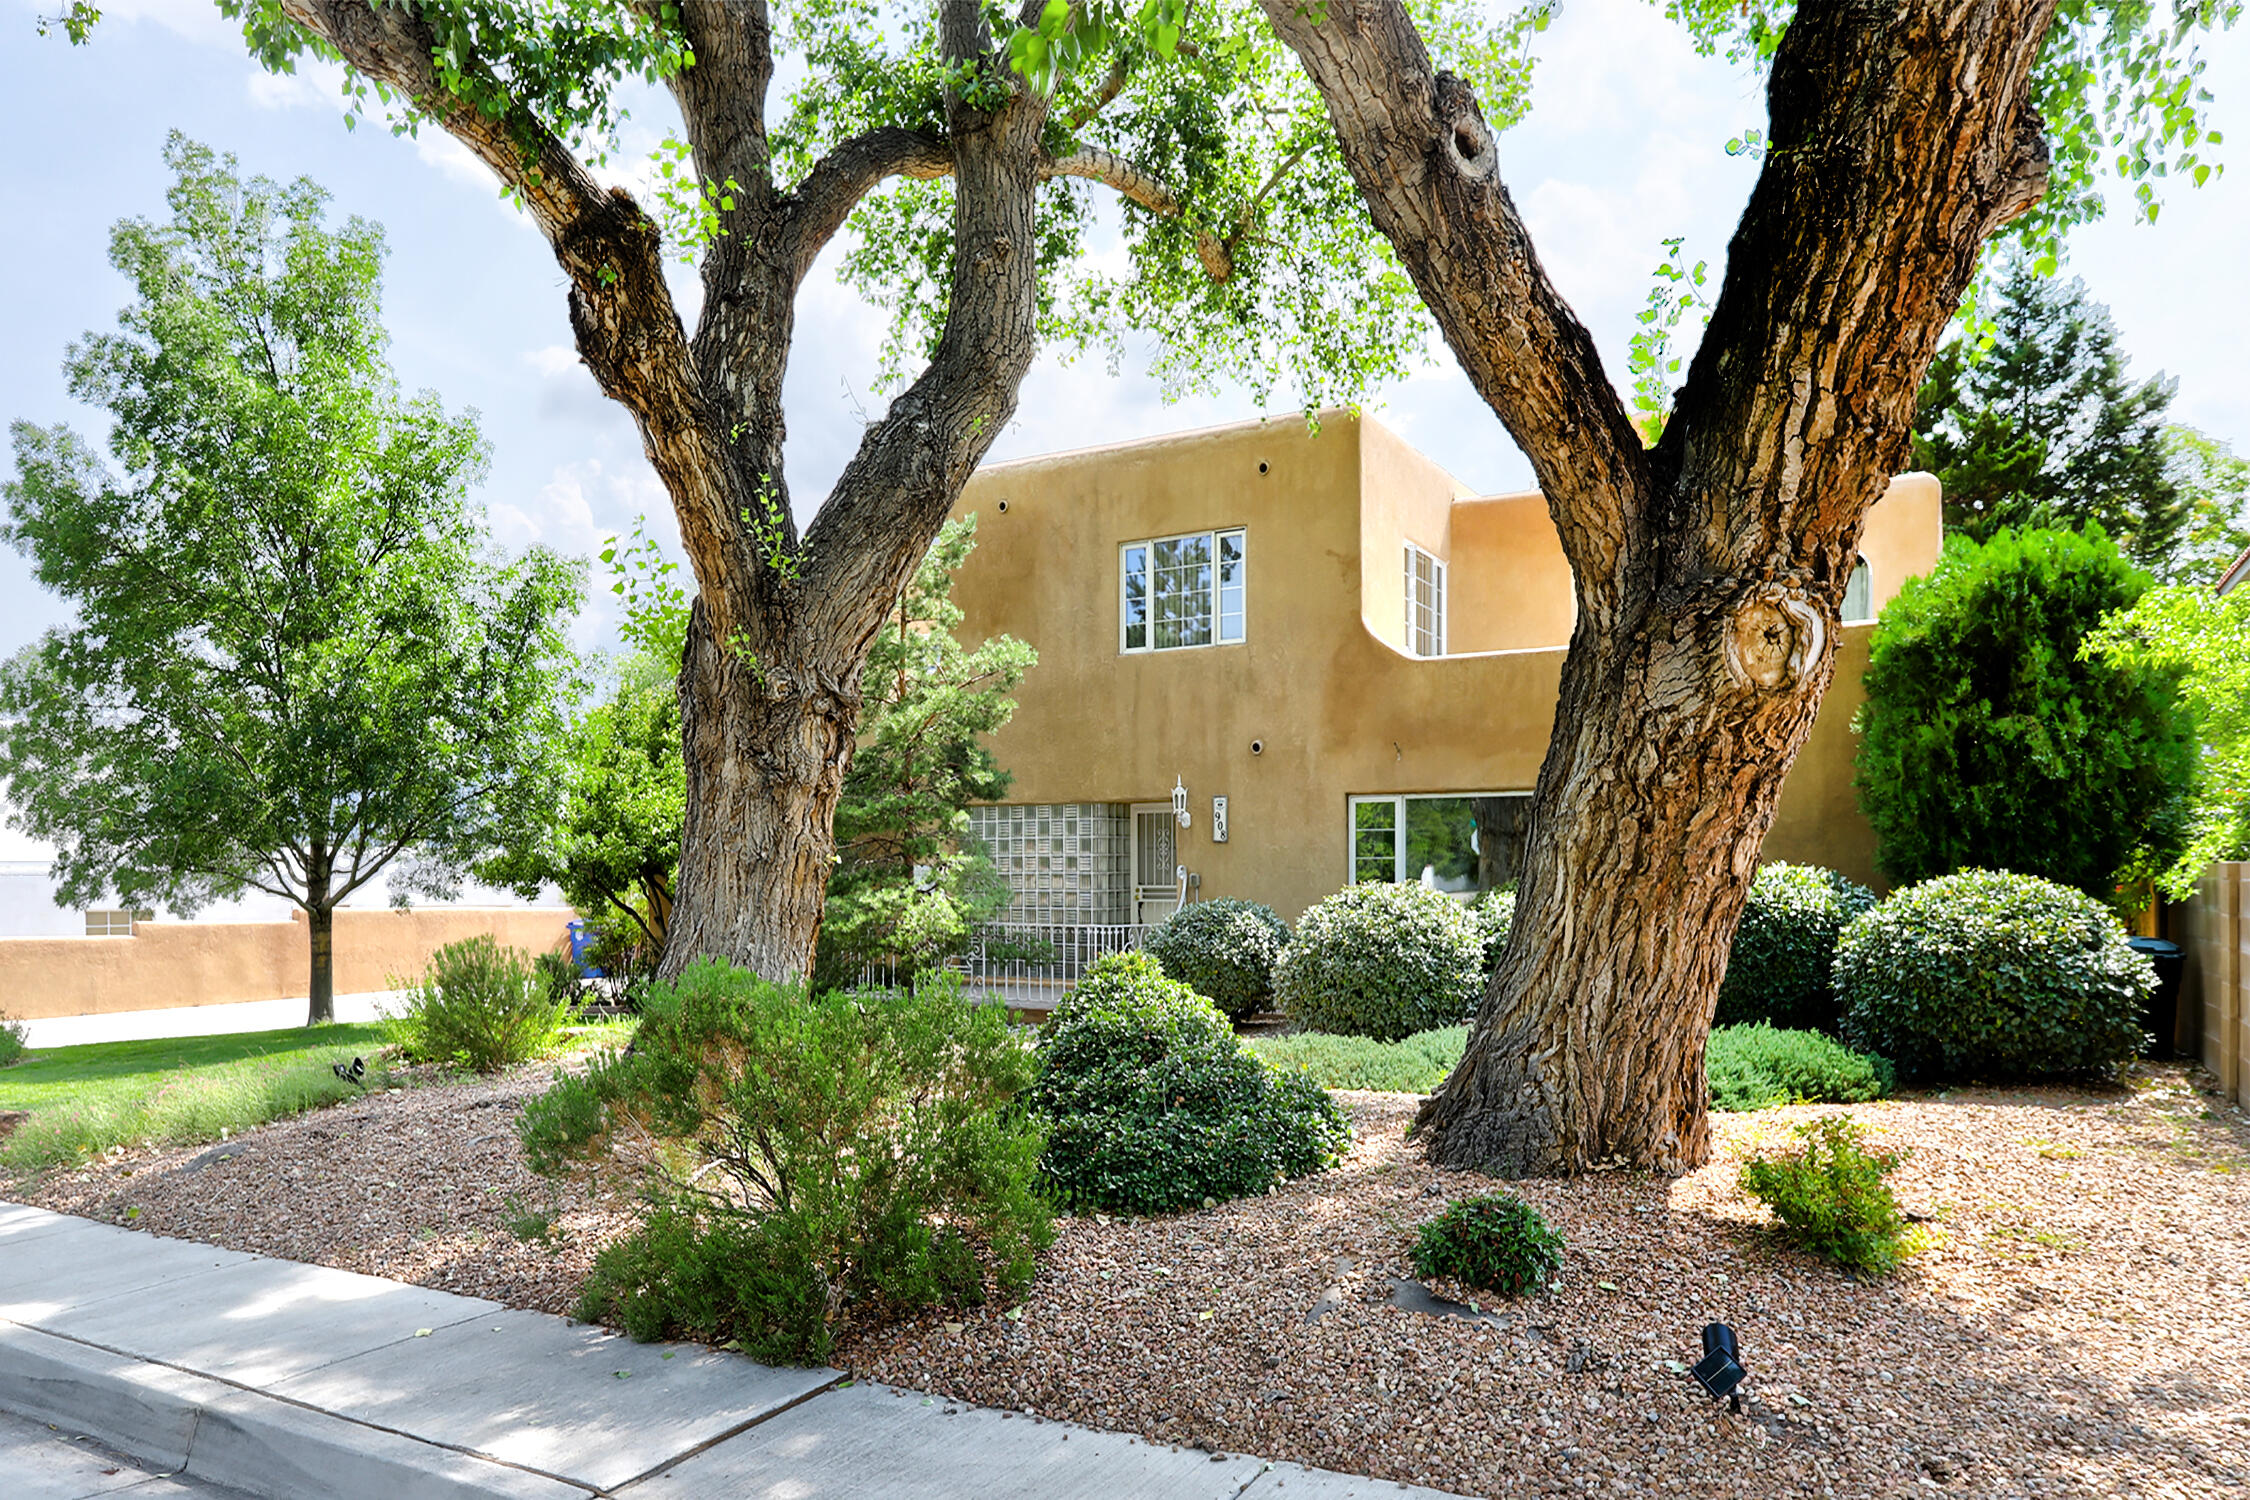 Summer Paradise! Quintesssential Ridgecrest Estate in the heart of the nieghborhood with Pool. So much space featuring generous sized rooms flooded with light. Everywhere find exquisite details like gleaming hardwood floors, cove ceilings and wainscotting. All kept in great condition while updating the right things like windows and AC! 17 Solar panels.5 luxurious bedrooms, 2 1/2 baths. large elegant living room with gas fireplace. Formal dining with french doors to Backyard. And what a backyard-it's a summer oasis with recent resurfaced pool, & covered patio.. Kitchen has huge island and tons of storage. Upstairs deck has views of the Sandias.  Wood burning fireplace in 5th bedroom/office. Detached 2 car oversized garage,. Fully landscaped with sprinklers & bubblers. Simply a gem come see!